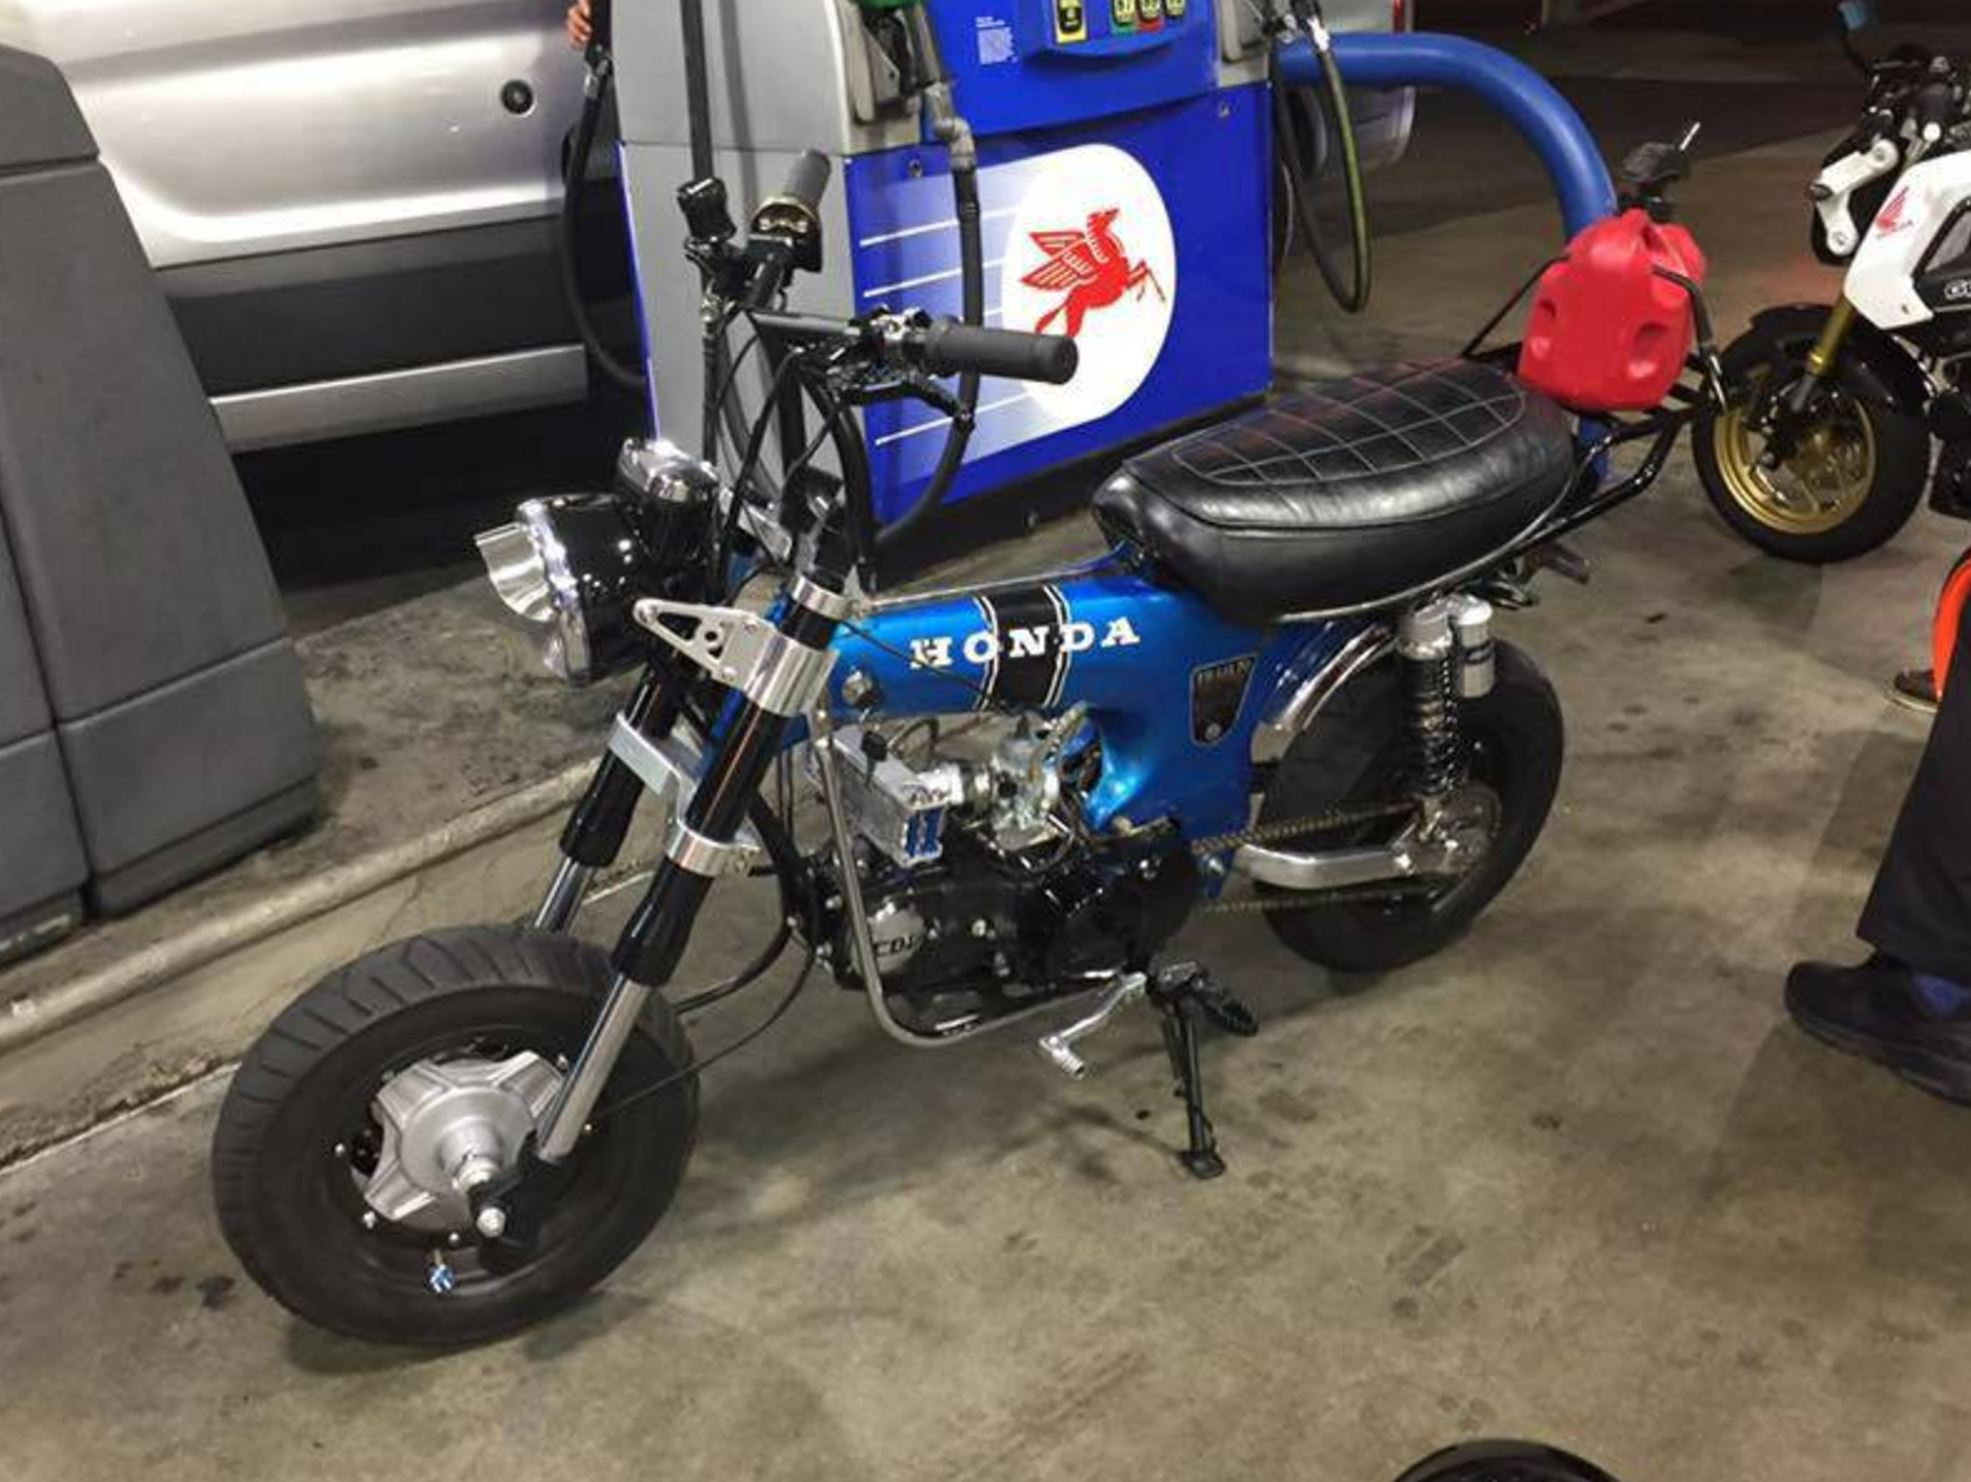 Double The Displacement 1979 Honda Ct70 Custom Bike Urious 1970 Specs This Fascinating Little Scoot Supposedly Gets Up To 70mph With 270lb Pilot Potential For Even More Speed Some Re Gearing